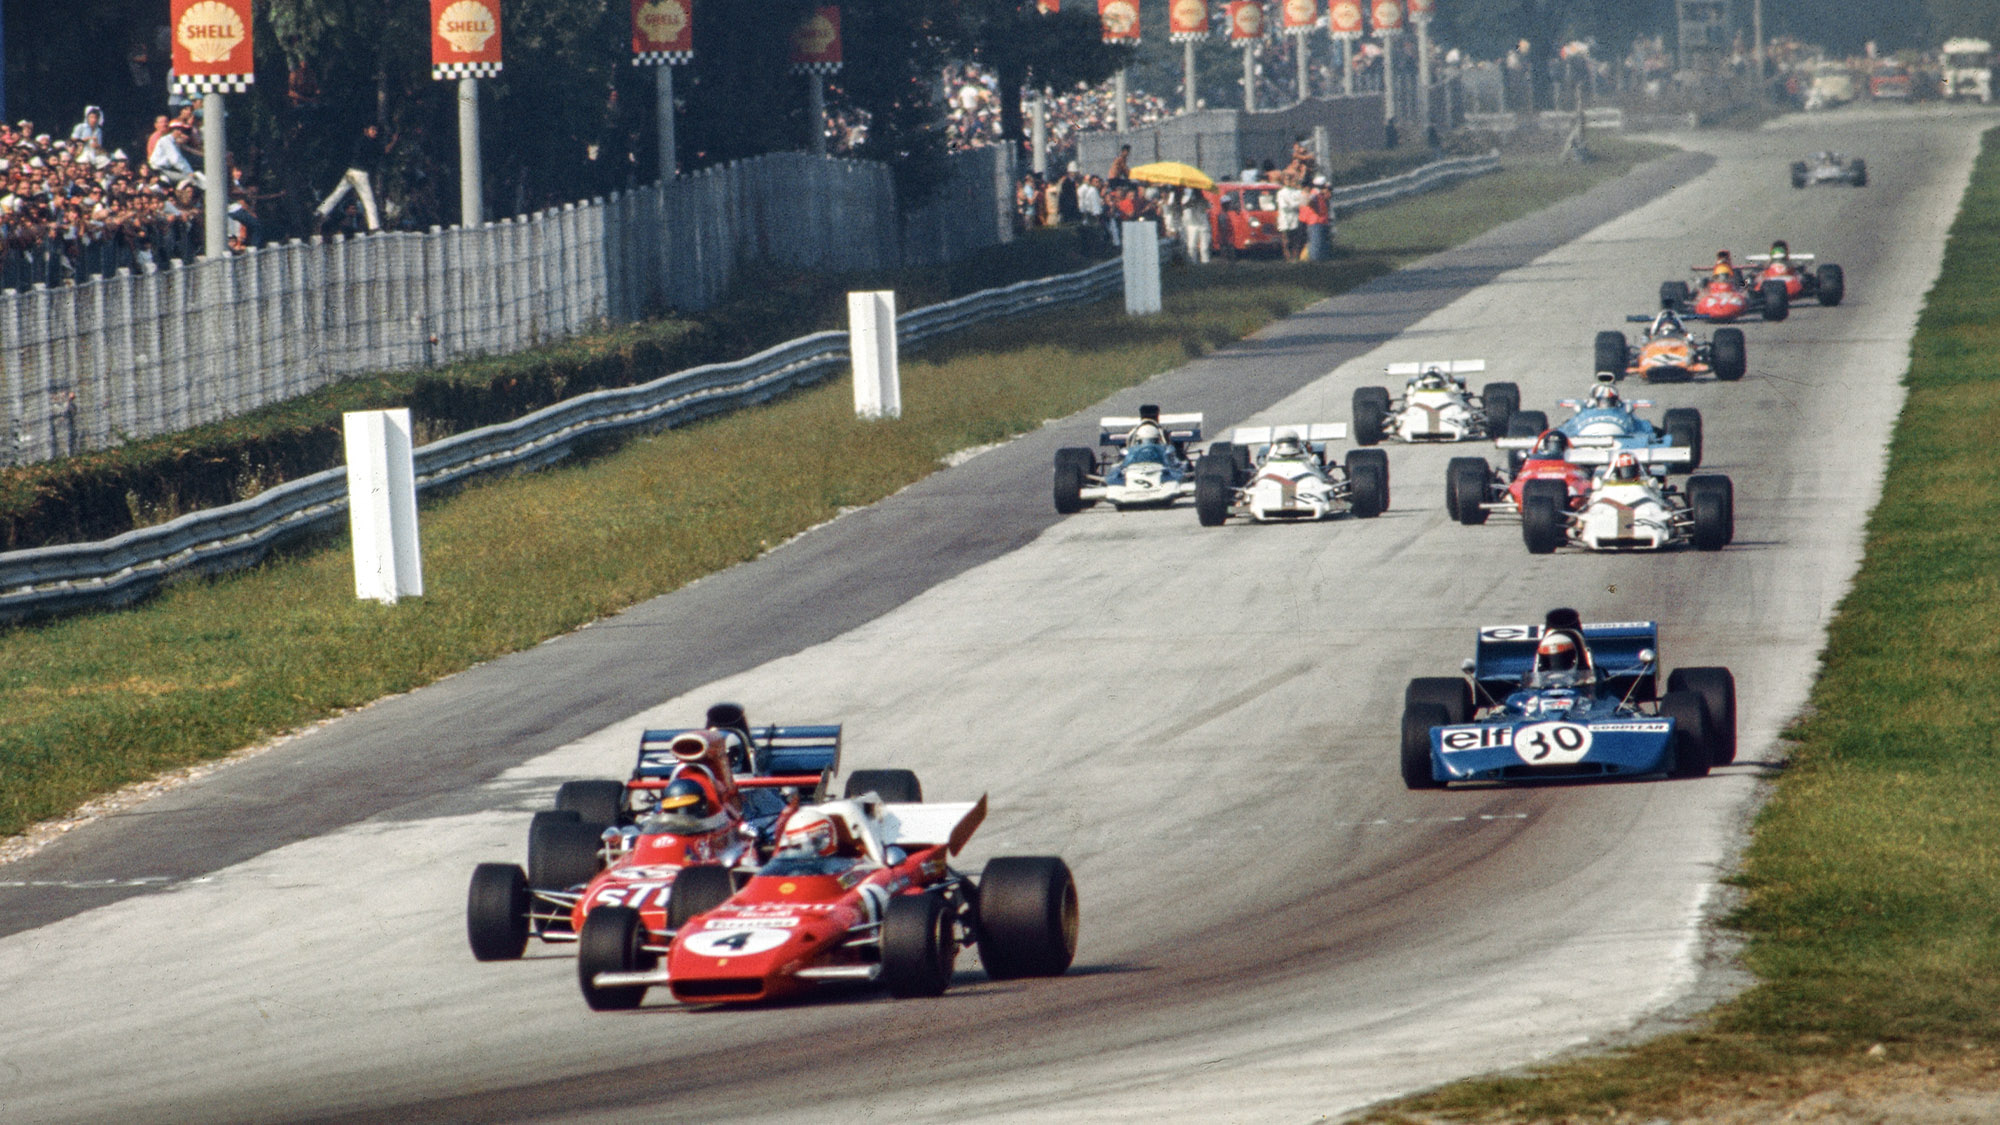 Clay Regazzoni leads at Monza in the opening laps of the 1971 F1 Italian Grand Prix